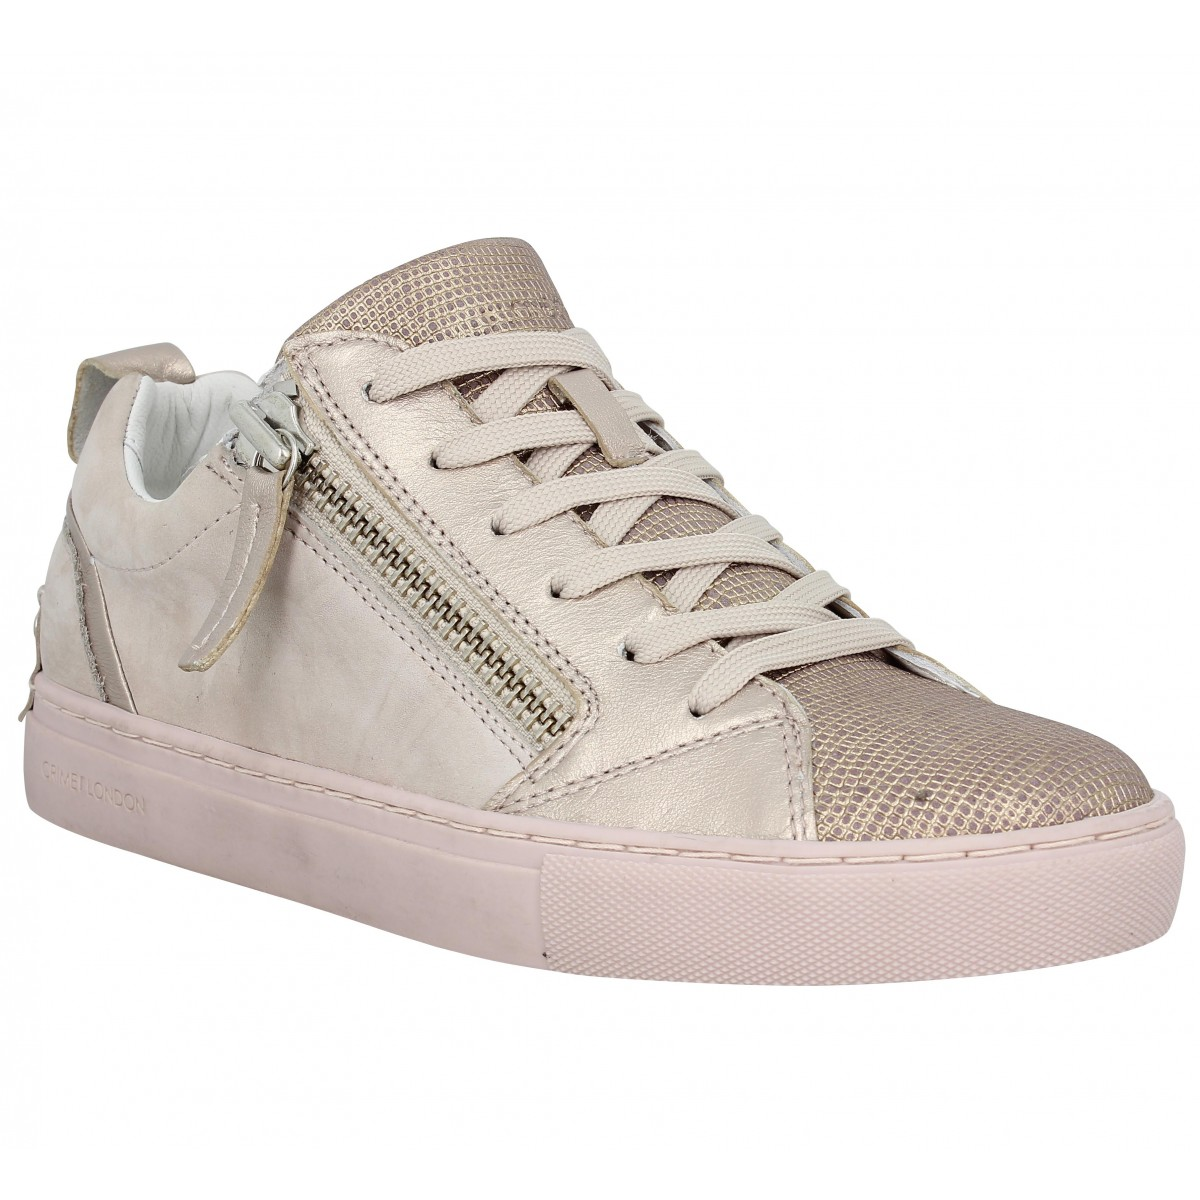 Baskets CRIME 25300 Low Femme Nude